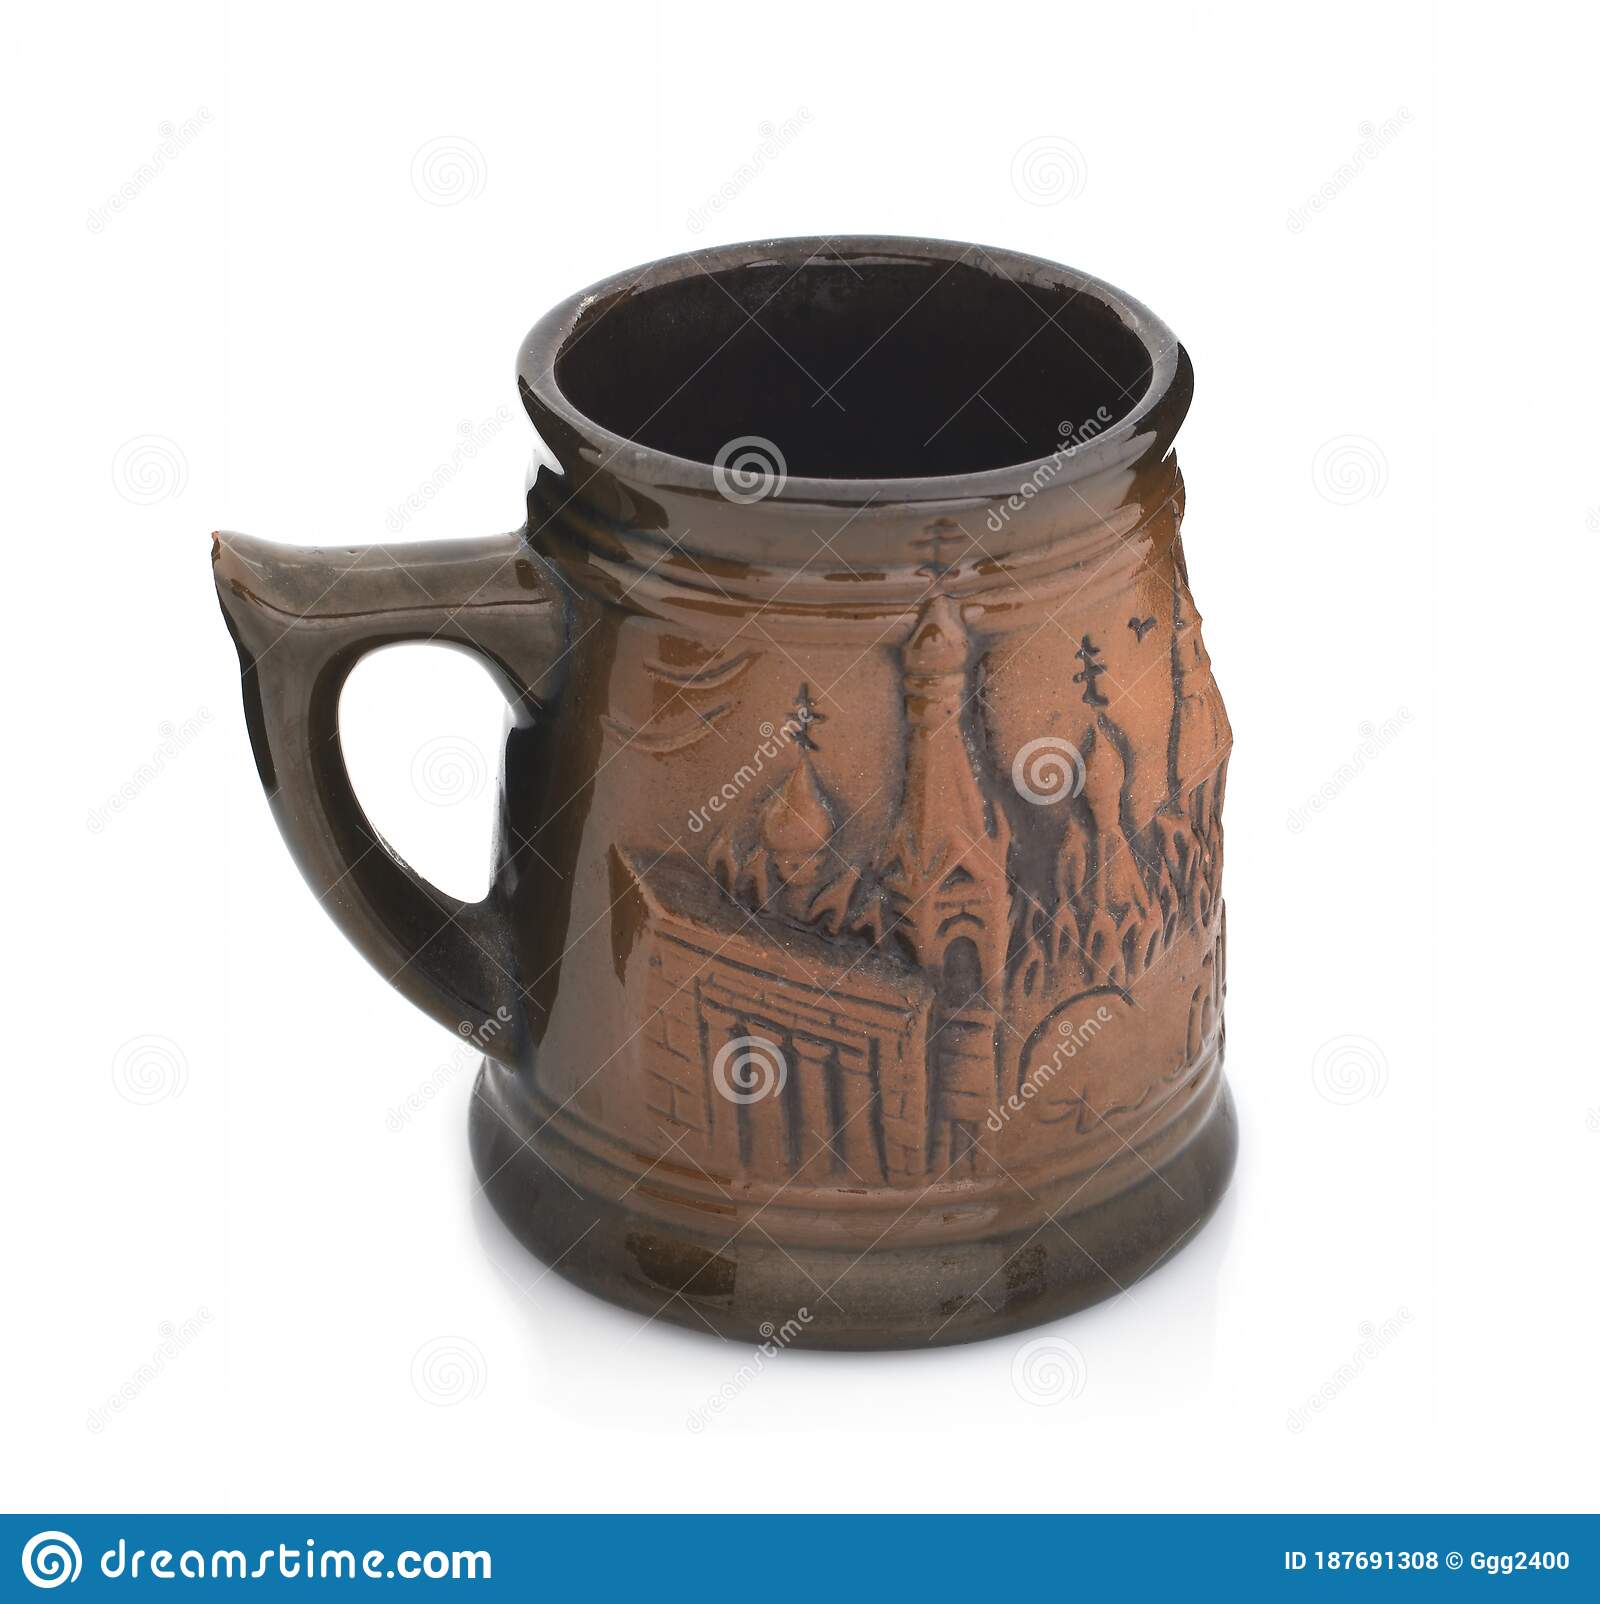 Mug With A Handle Of Red Clay On A White Background Stock Photo Image Of Bright Blank 187691308